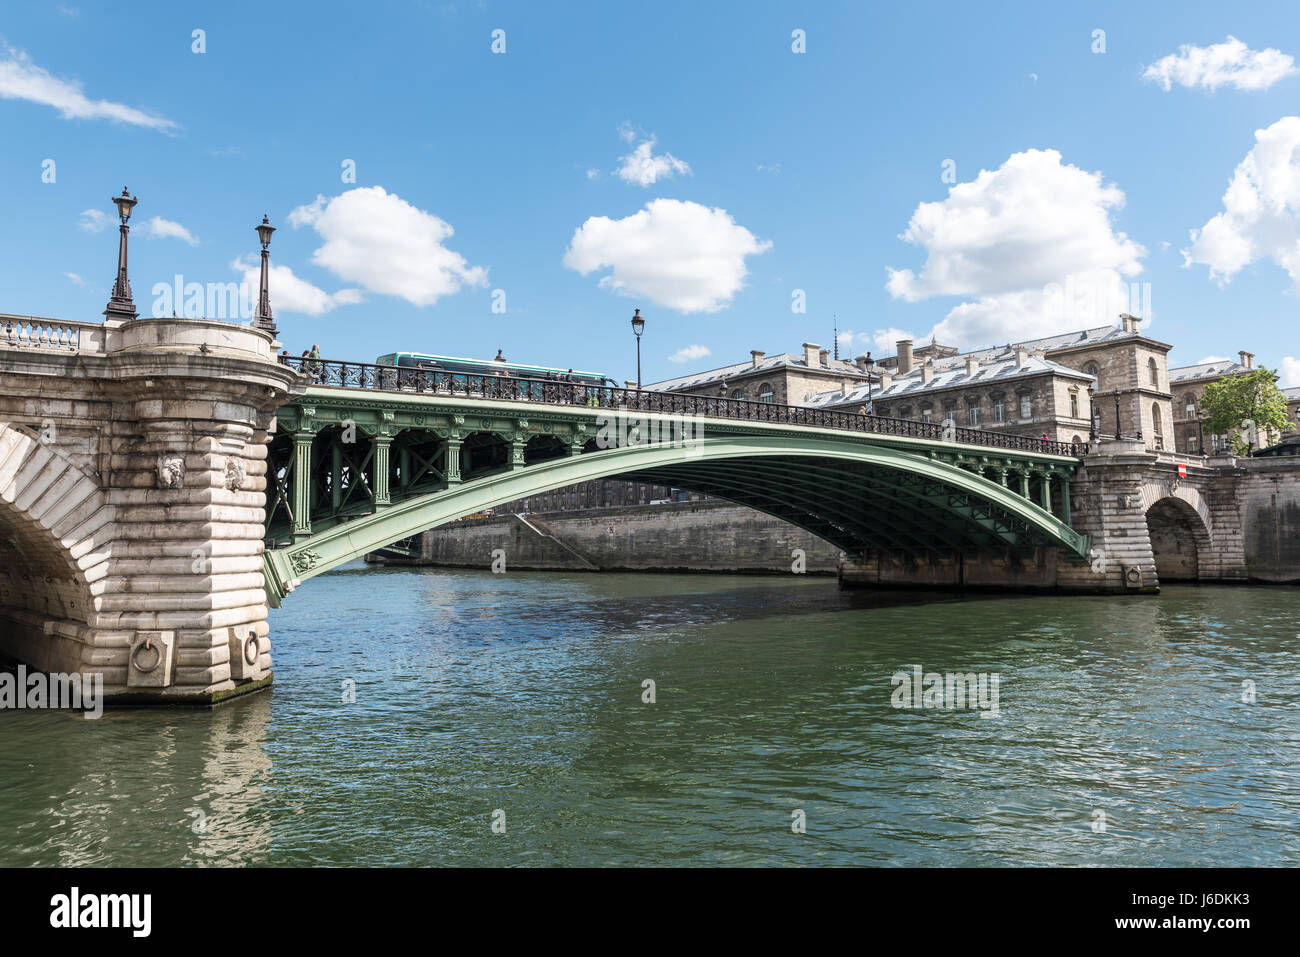 Notre-Dame Bridge in Paris France on a sunny day with blue cloudy sky - Stock Image